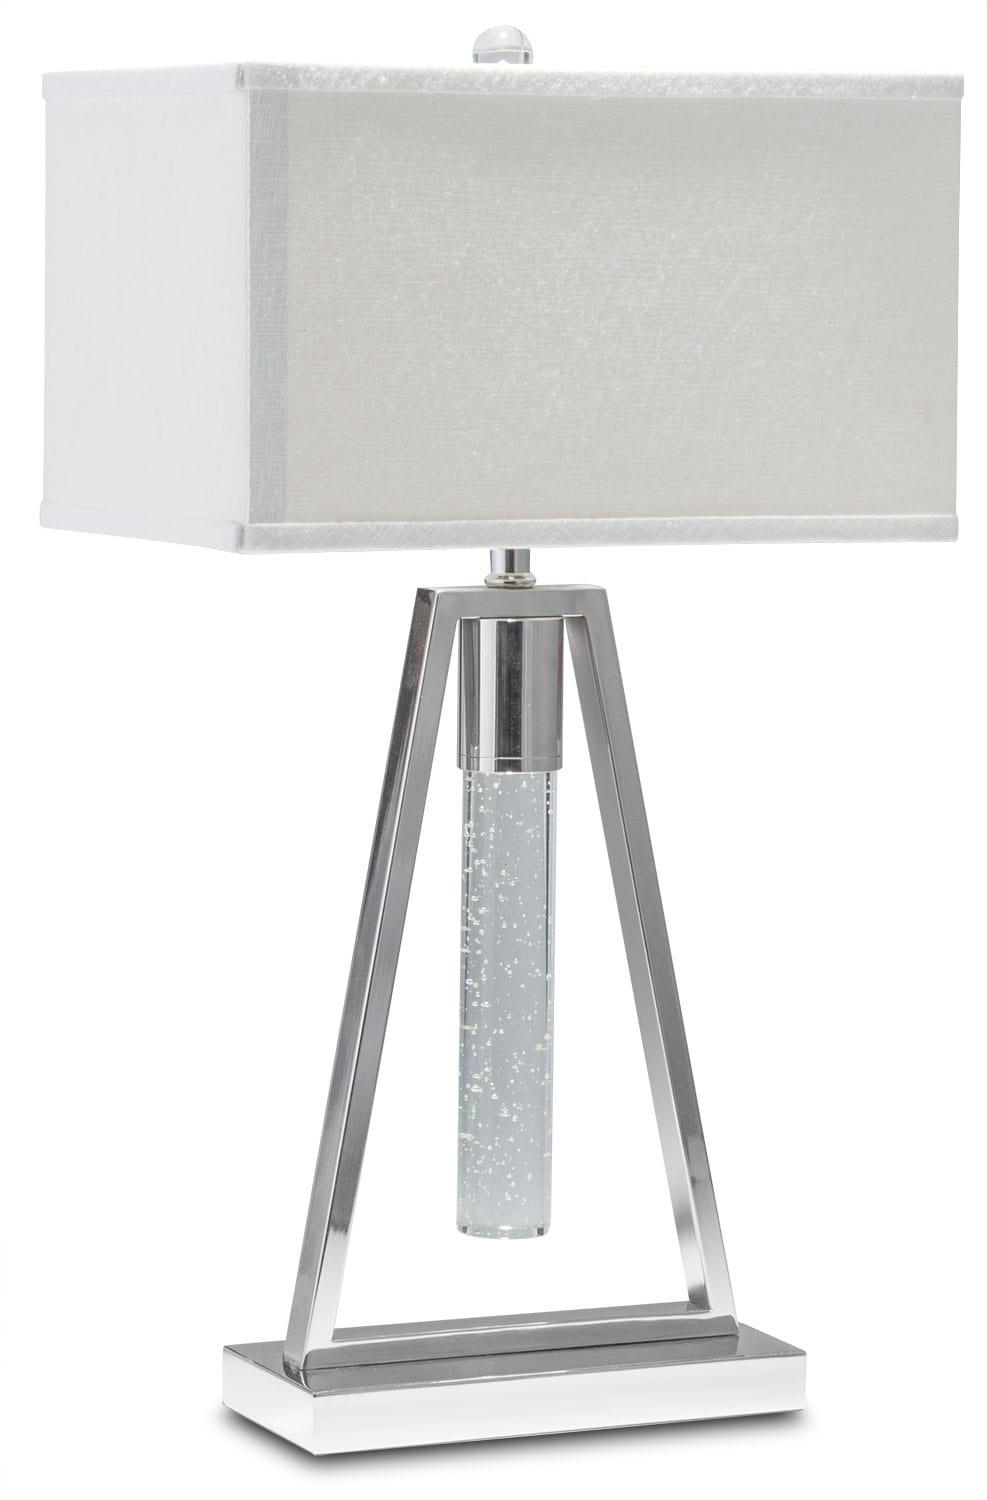 Home Accessories - Ice Table Lamp - Nickel